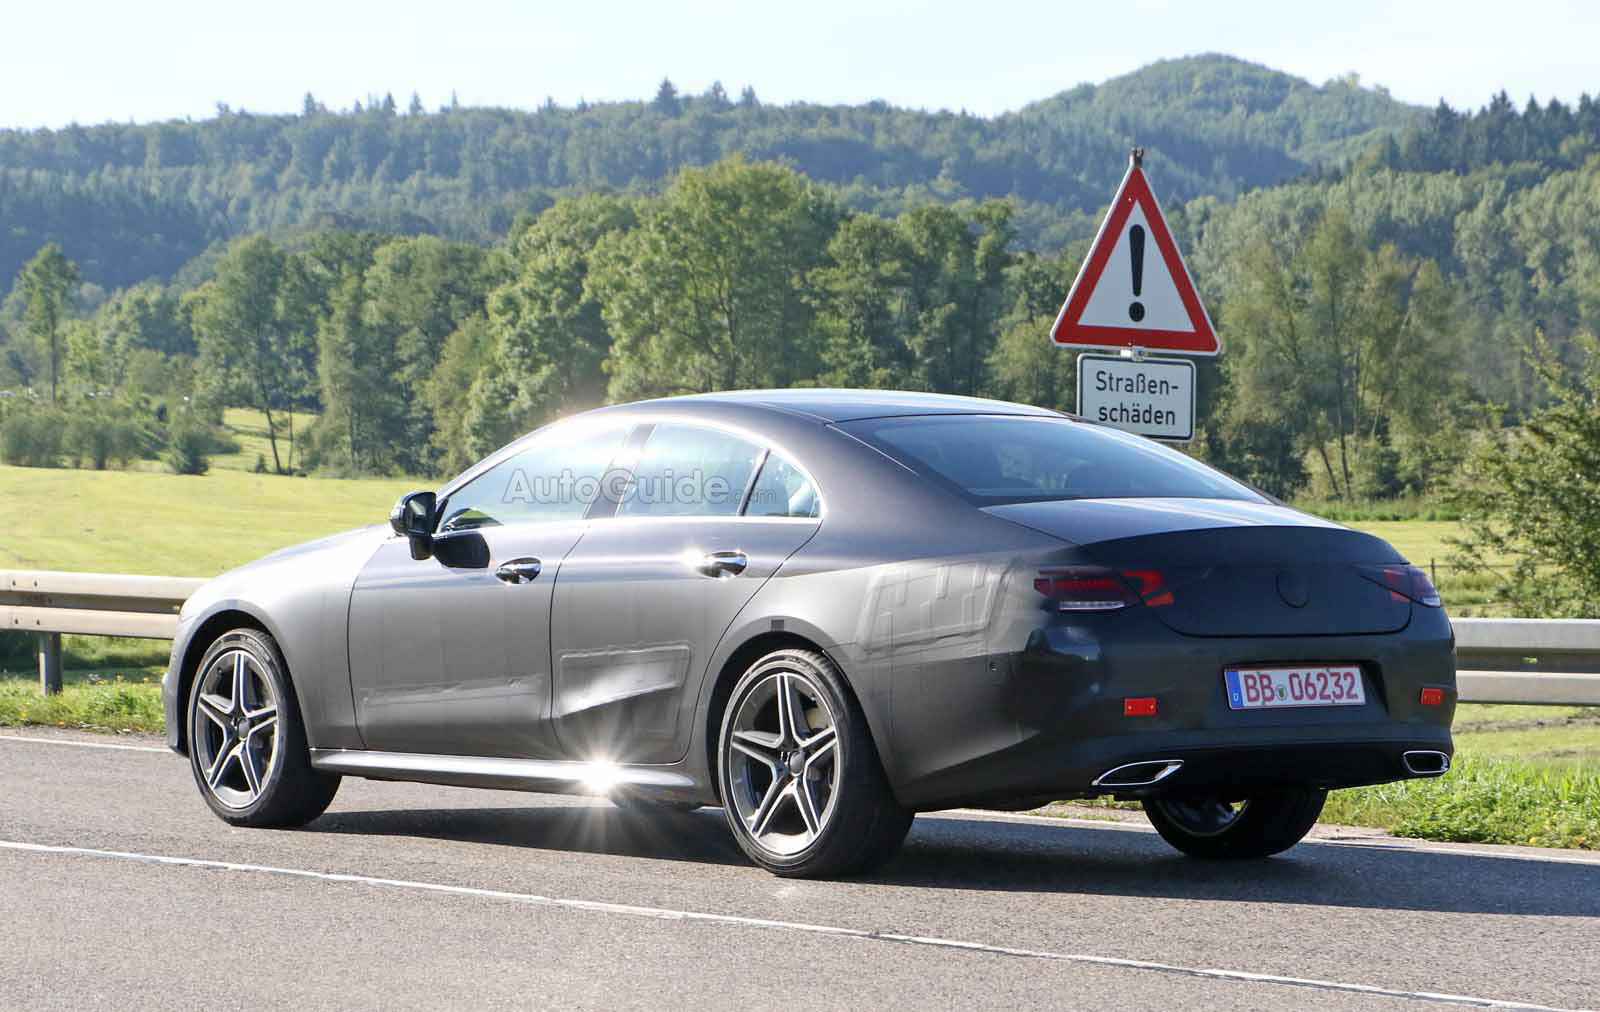 2018 mercedes benz cls. brilliant mercedes 2018mercedesbenzclsspied3 with 2018 mercedes benz cls